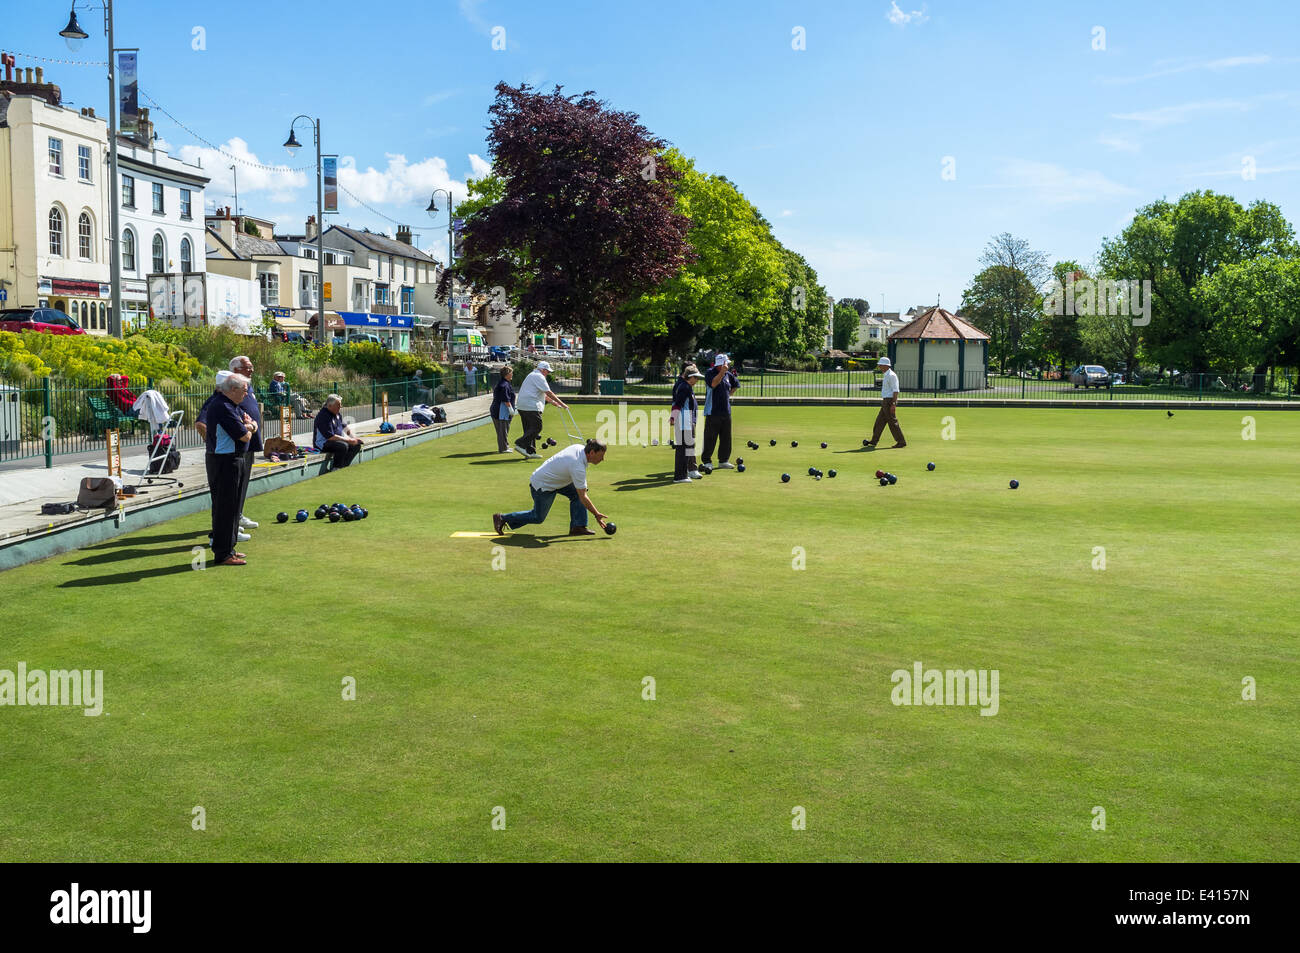 Dawlish, Devon, England.  People playing bowls at the Dawlish Bowls Club in the town centre, center. - Stock Image